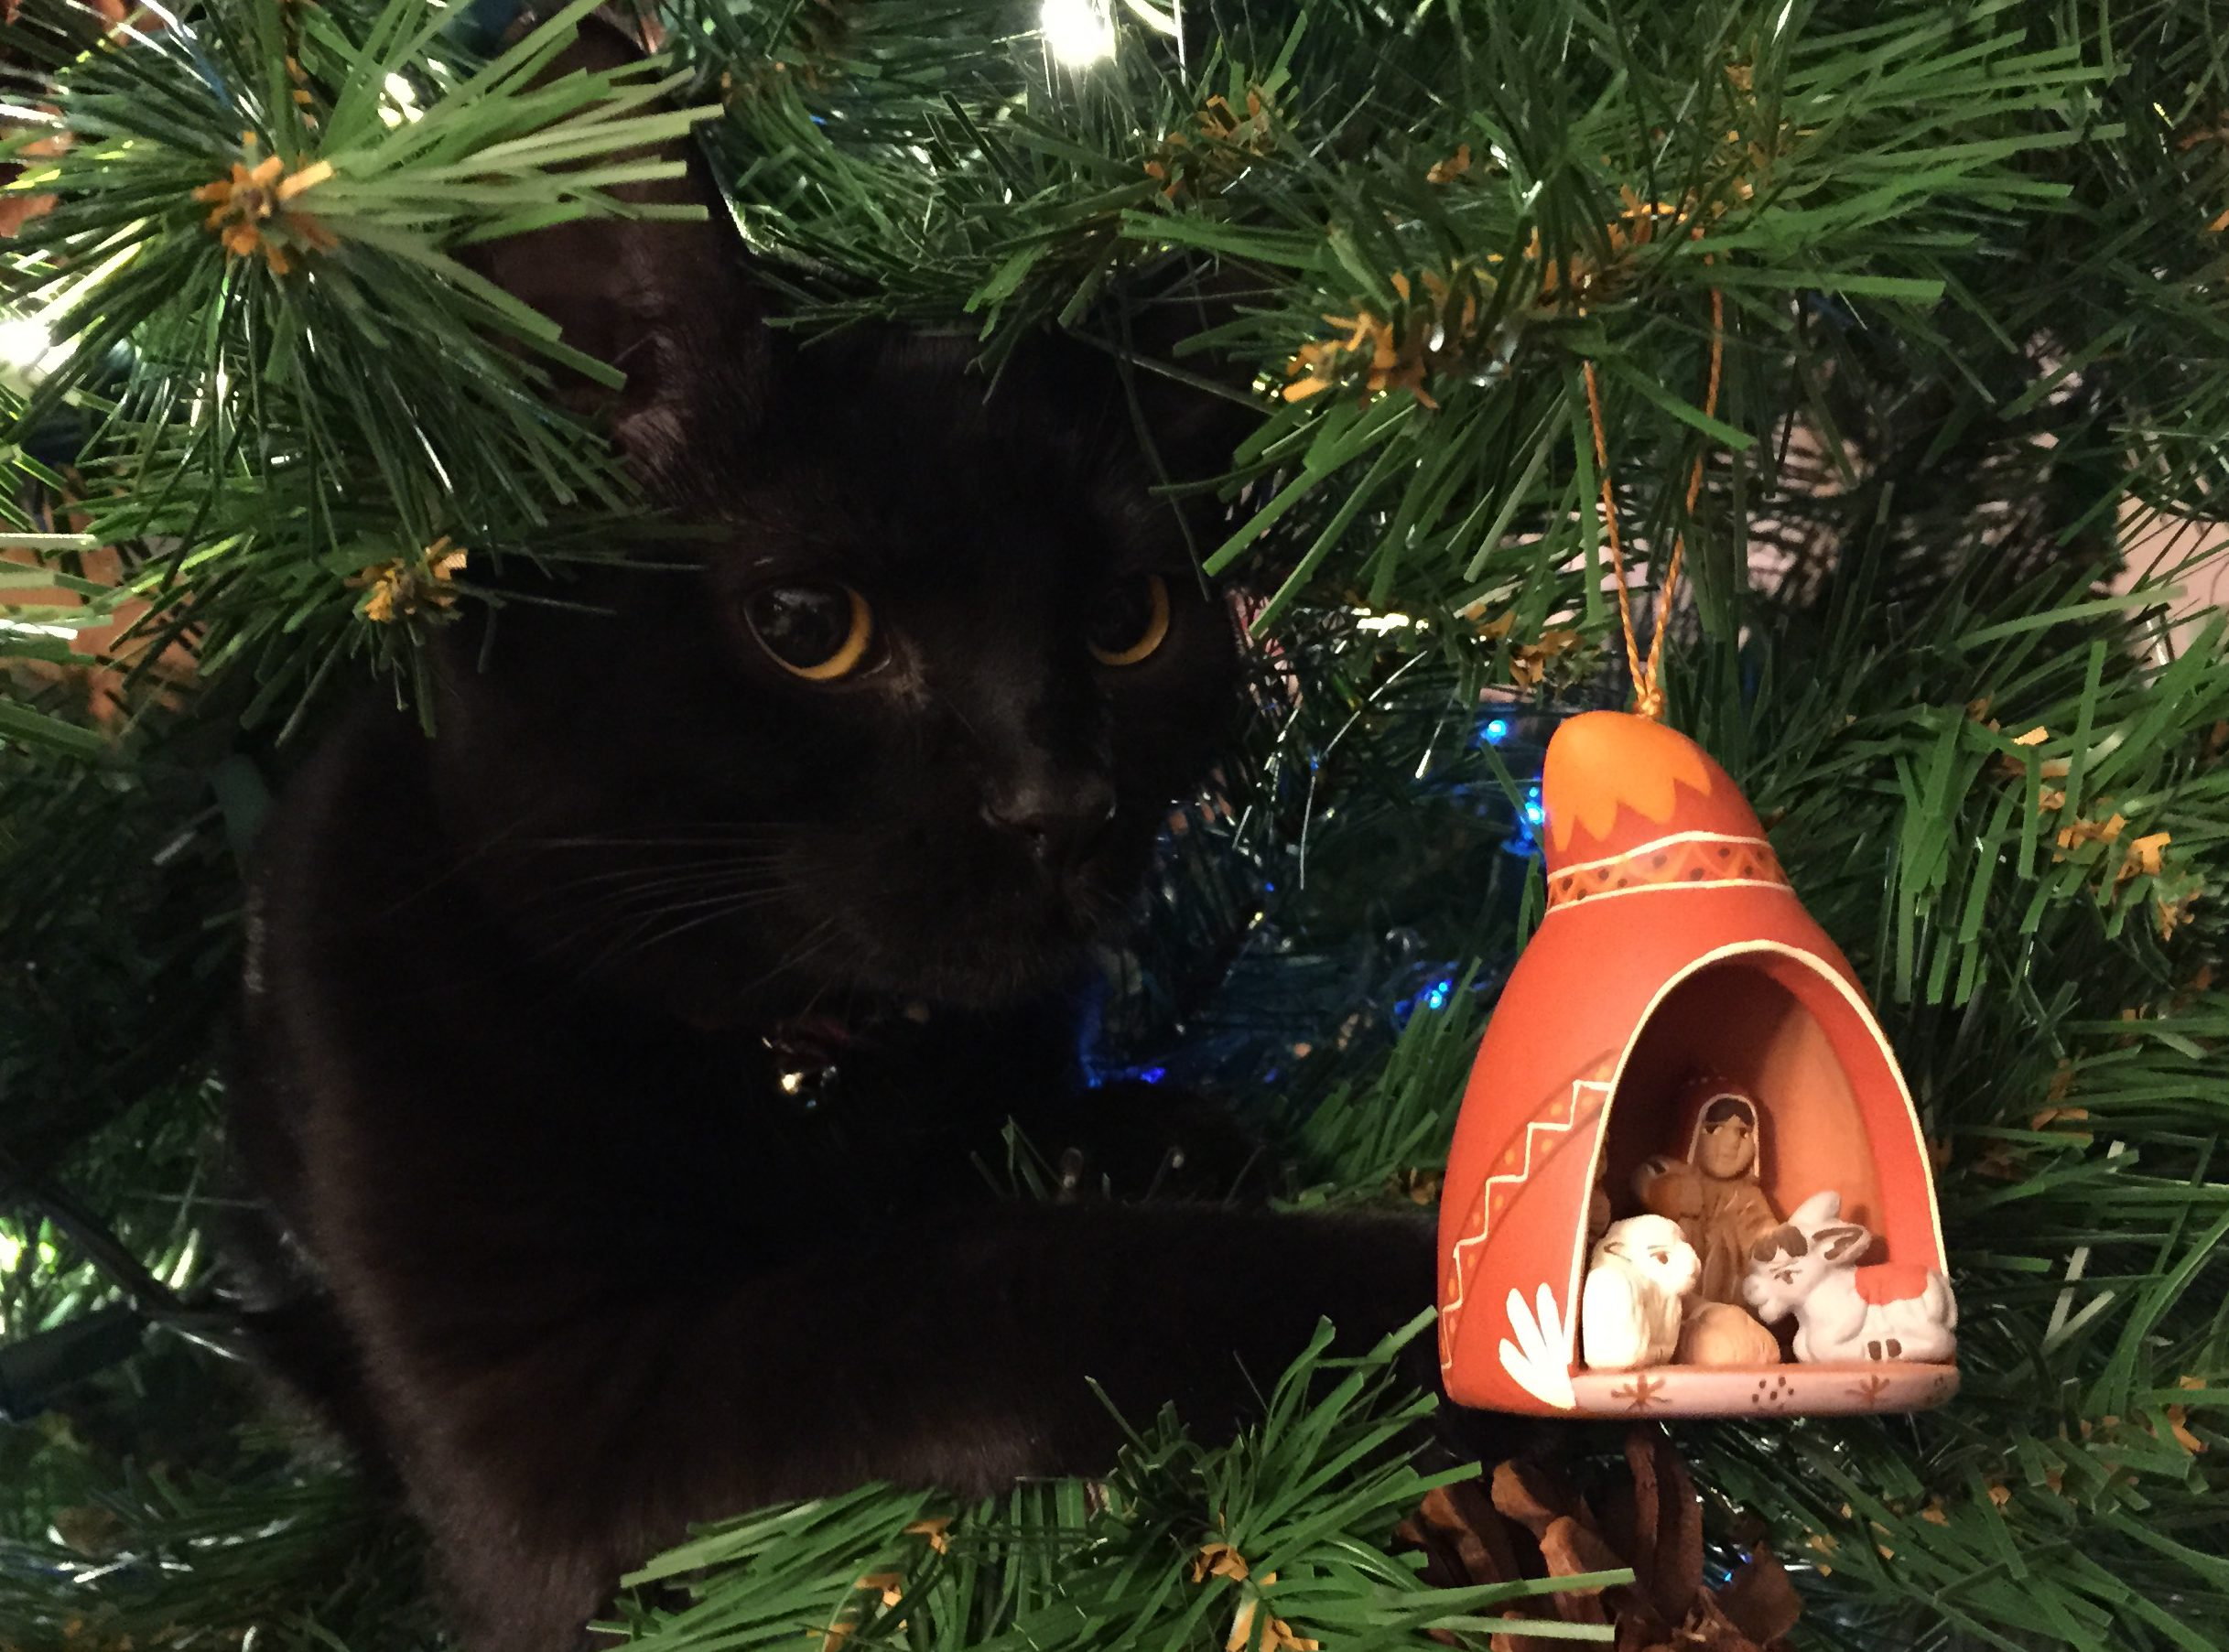 black cat perched in christmas tree with nativity scene ornament in the foreground